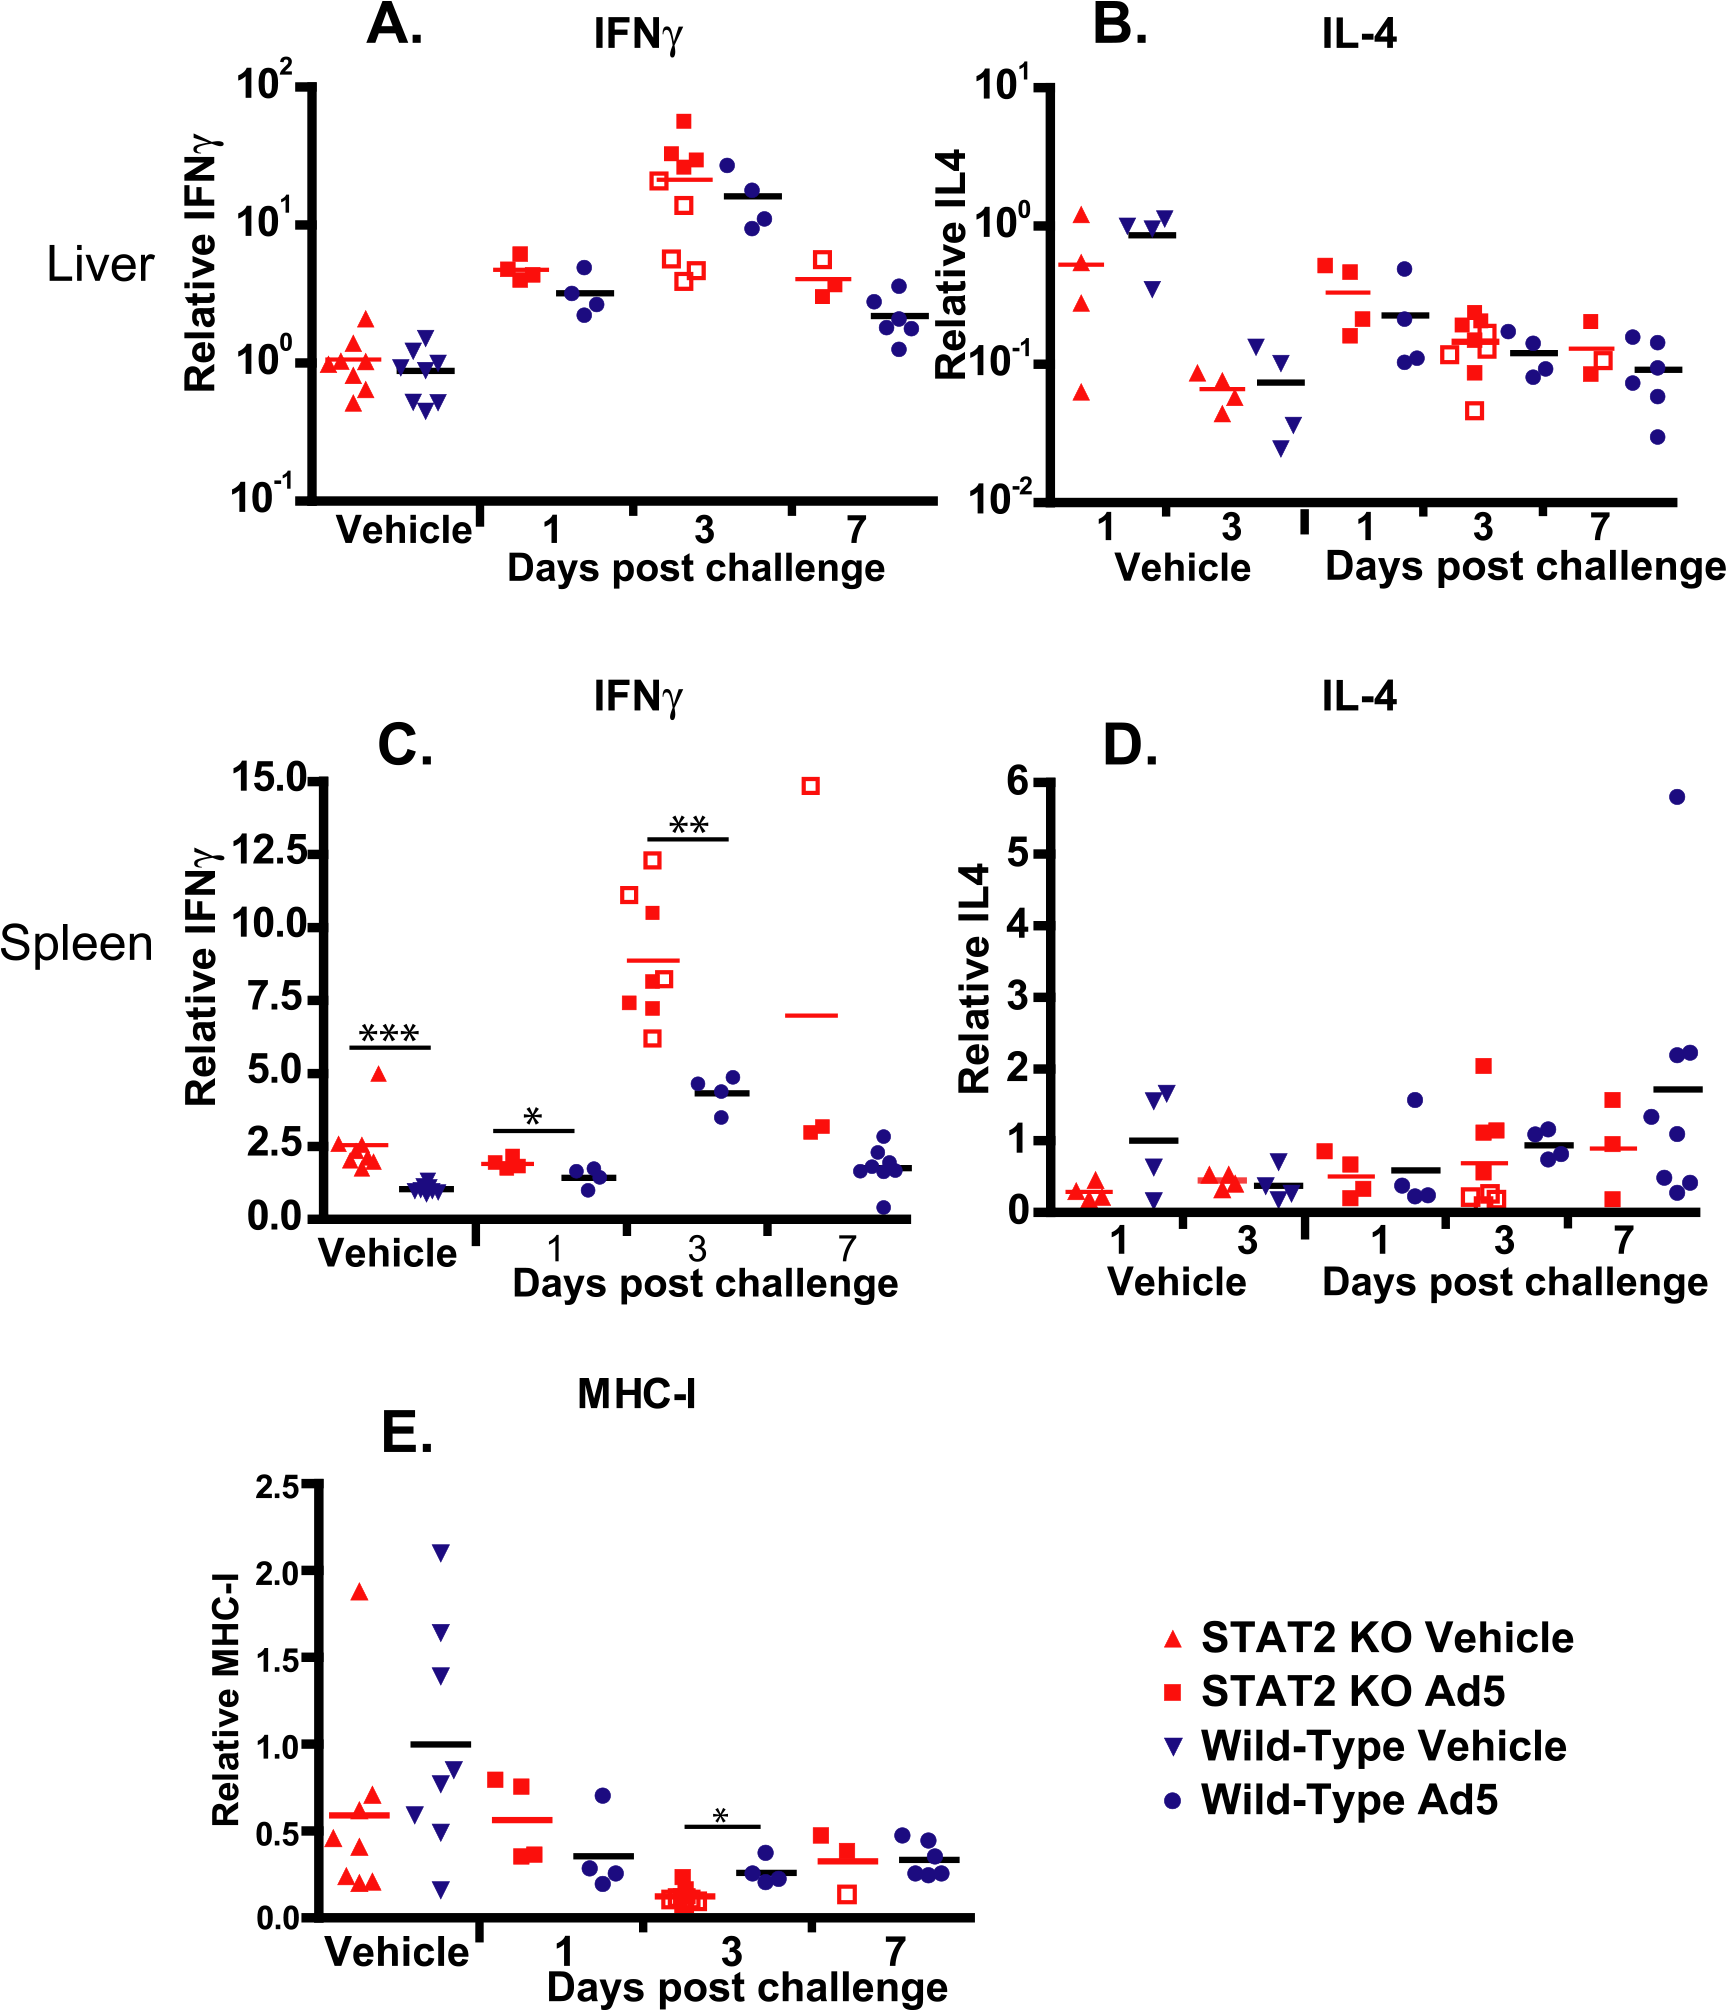 Cytokine expression in the liver is similar in wt and STAT2 KO hamsters; however, the expression of IFNγ is up-regulated in the spleen of STAT2 KO hamsters compared to wt ones.